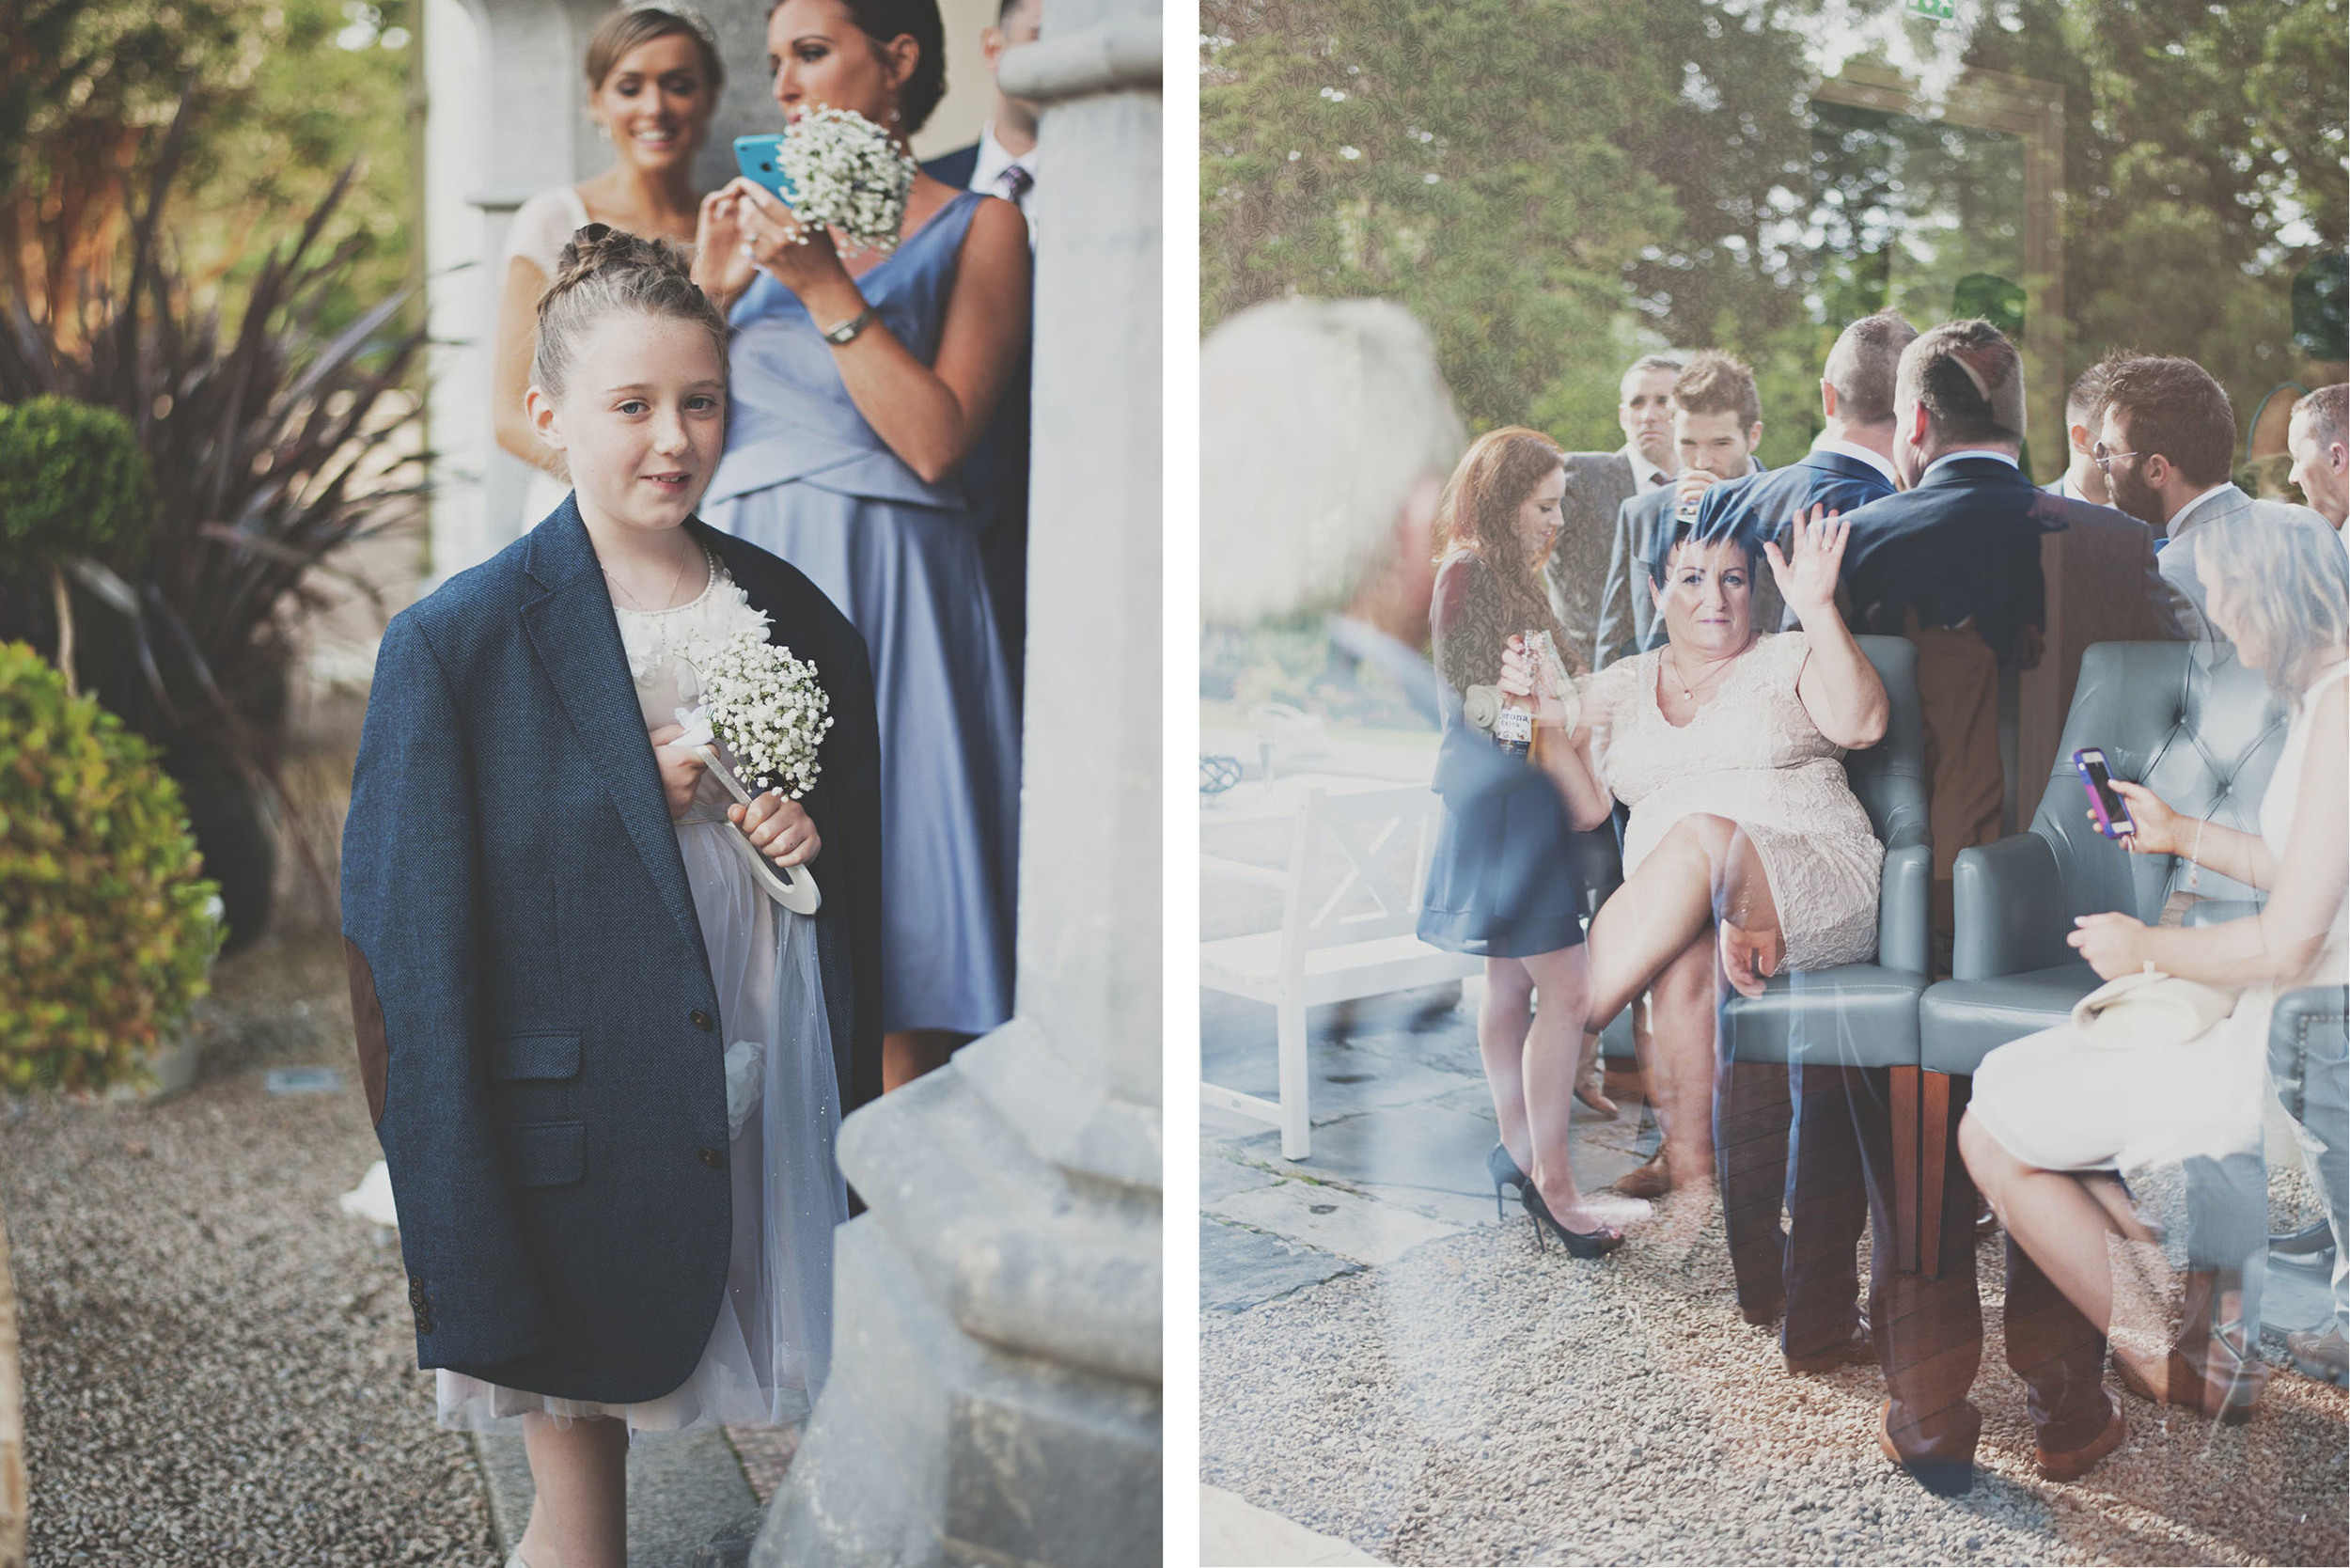 Lucy & James' Dromquinna Manor Wedding 101.jpg